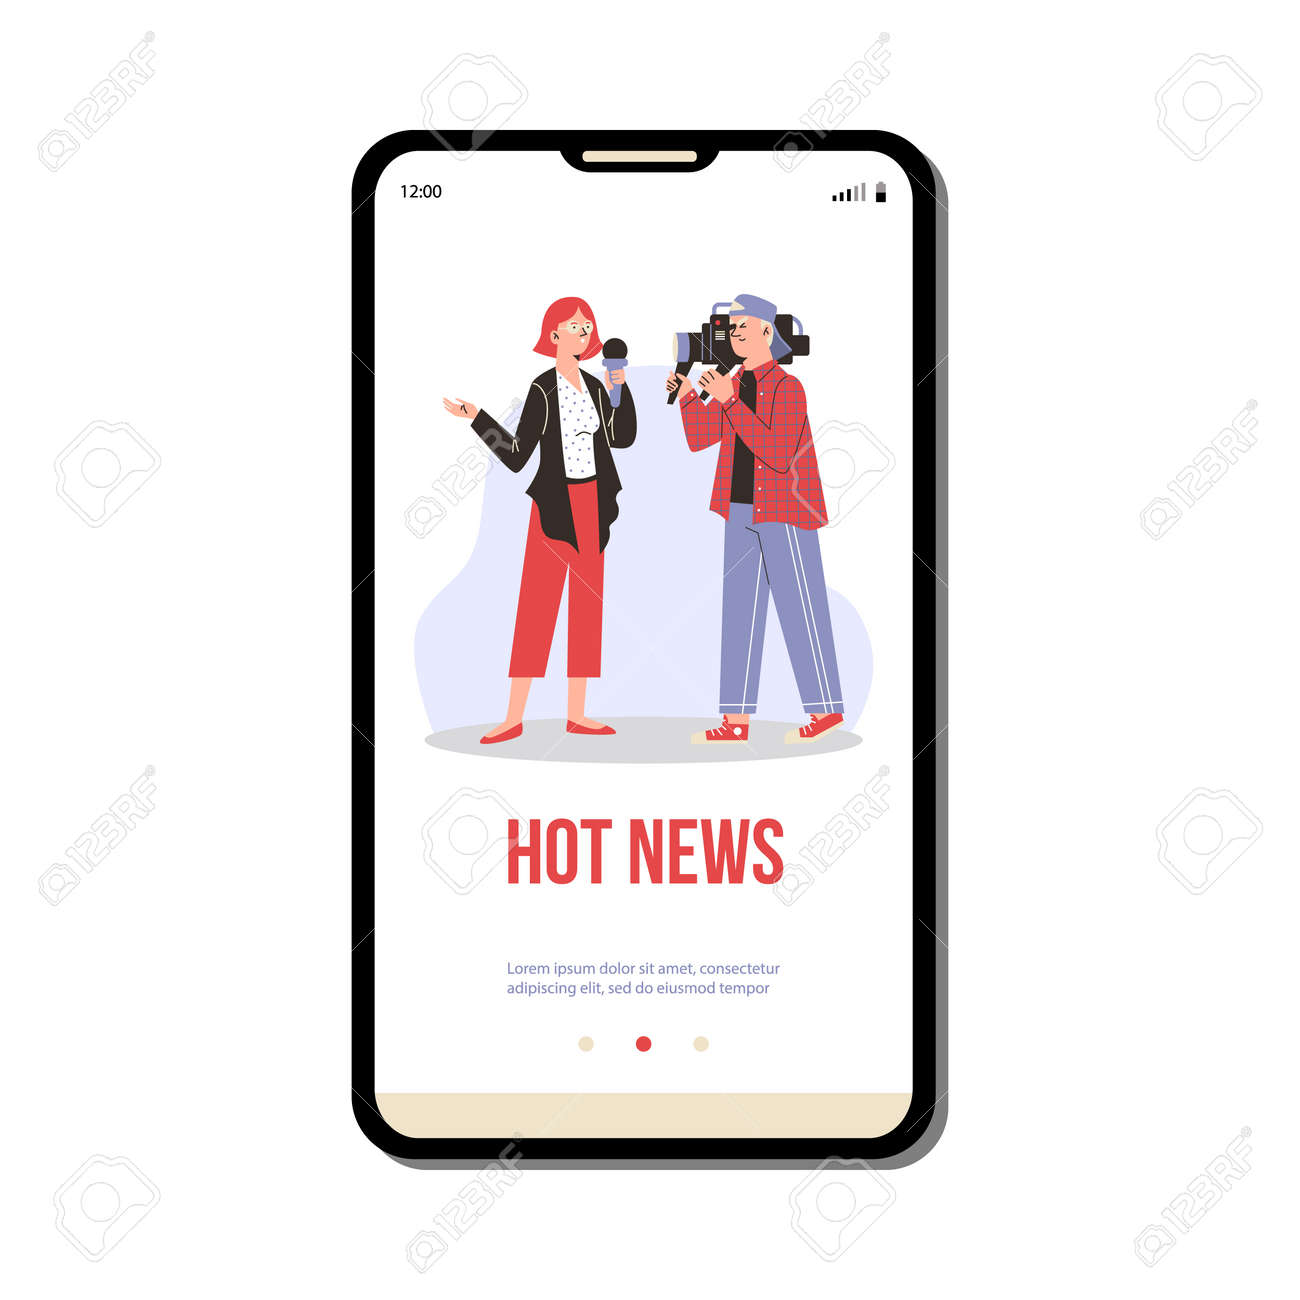 Smartphone app with live broadcasting tv daily hot news a vector illustration. - 173358201